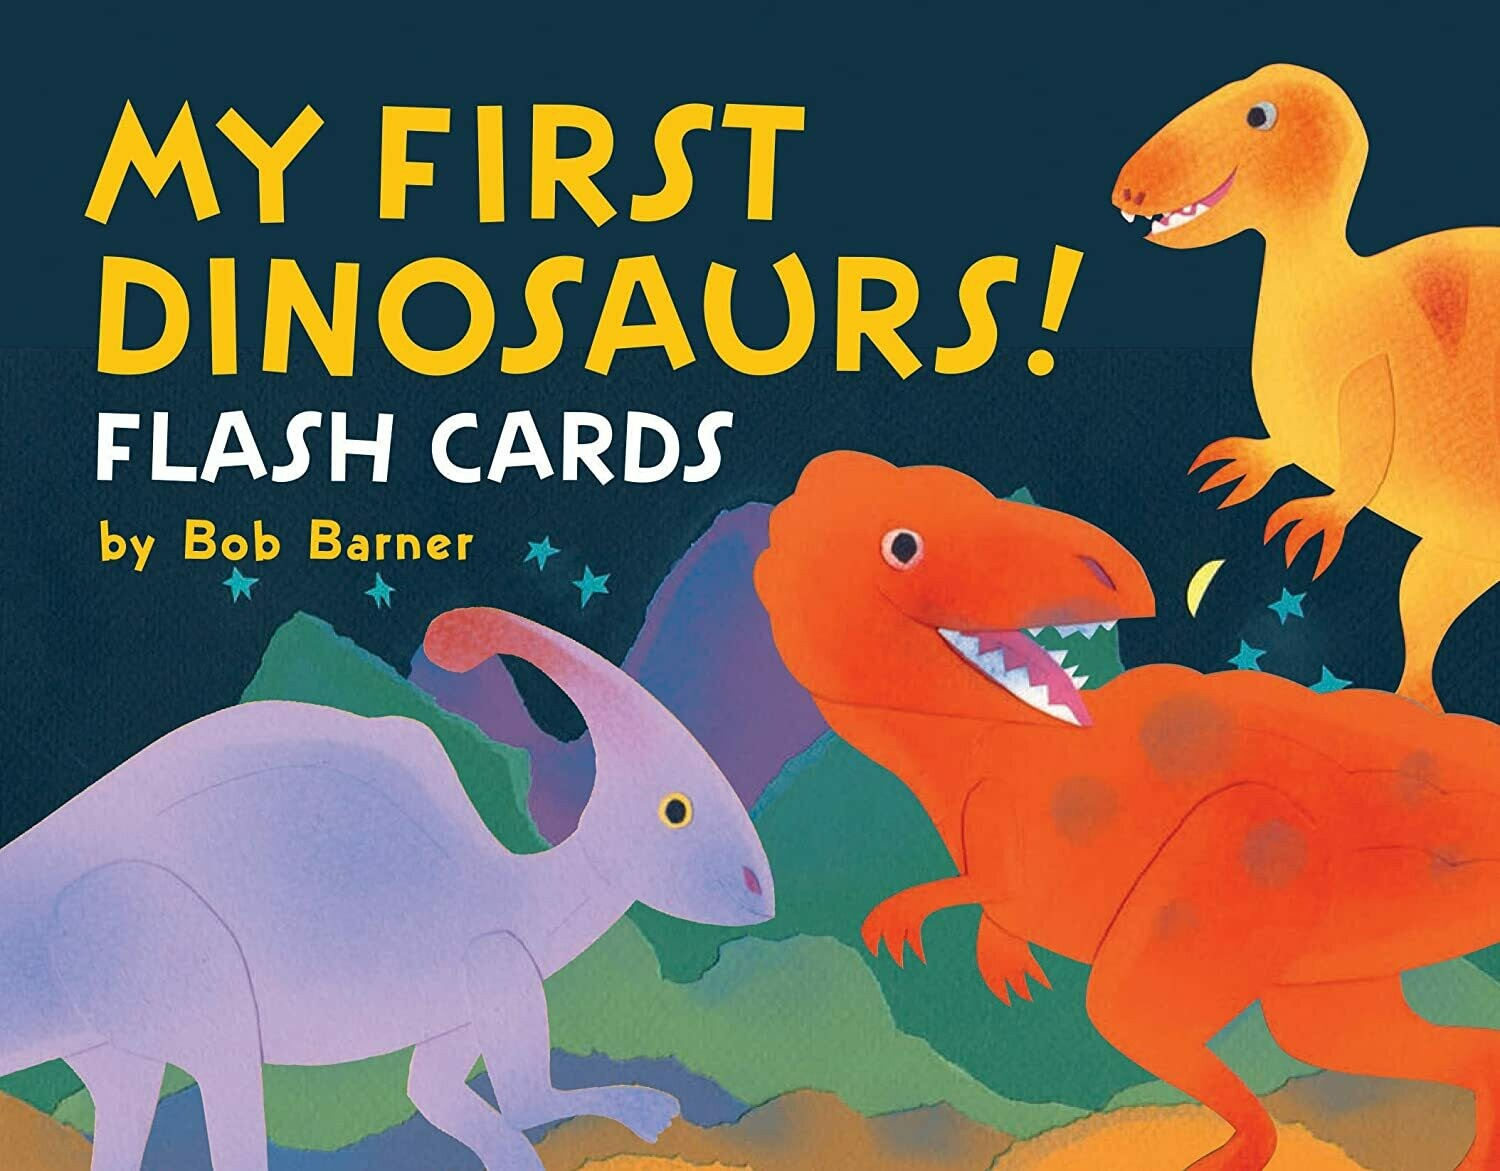 My First Dinosaurs Flashcards